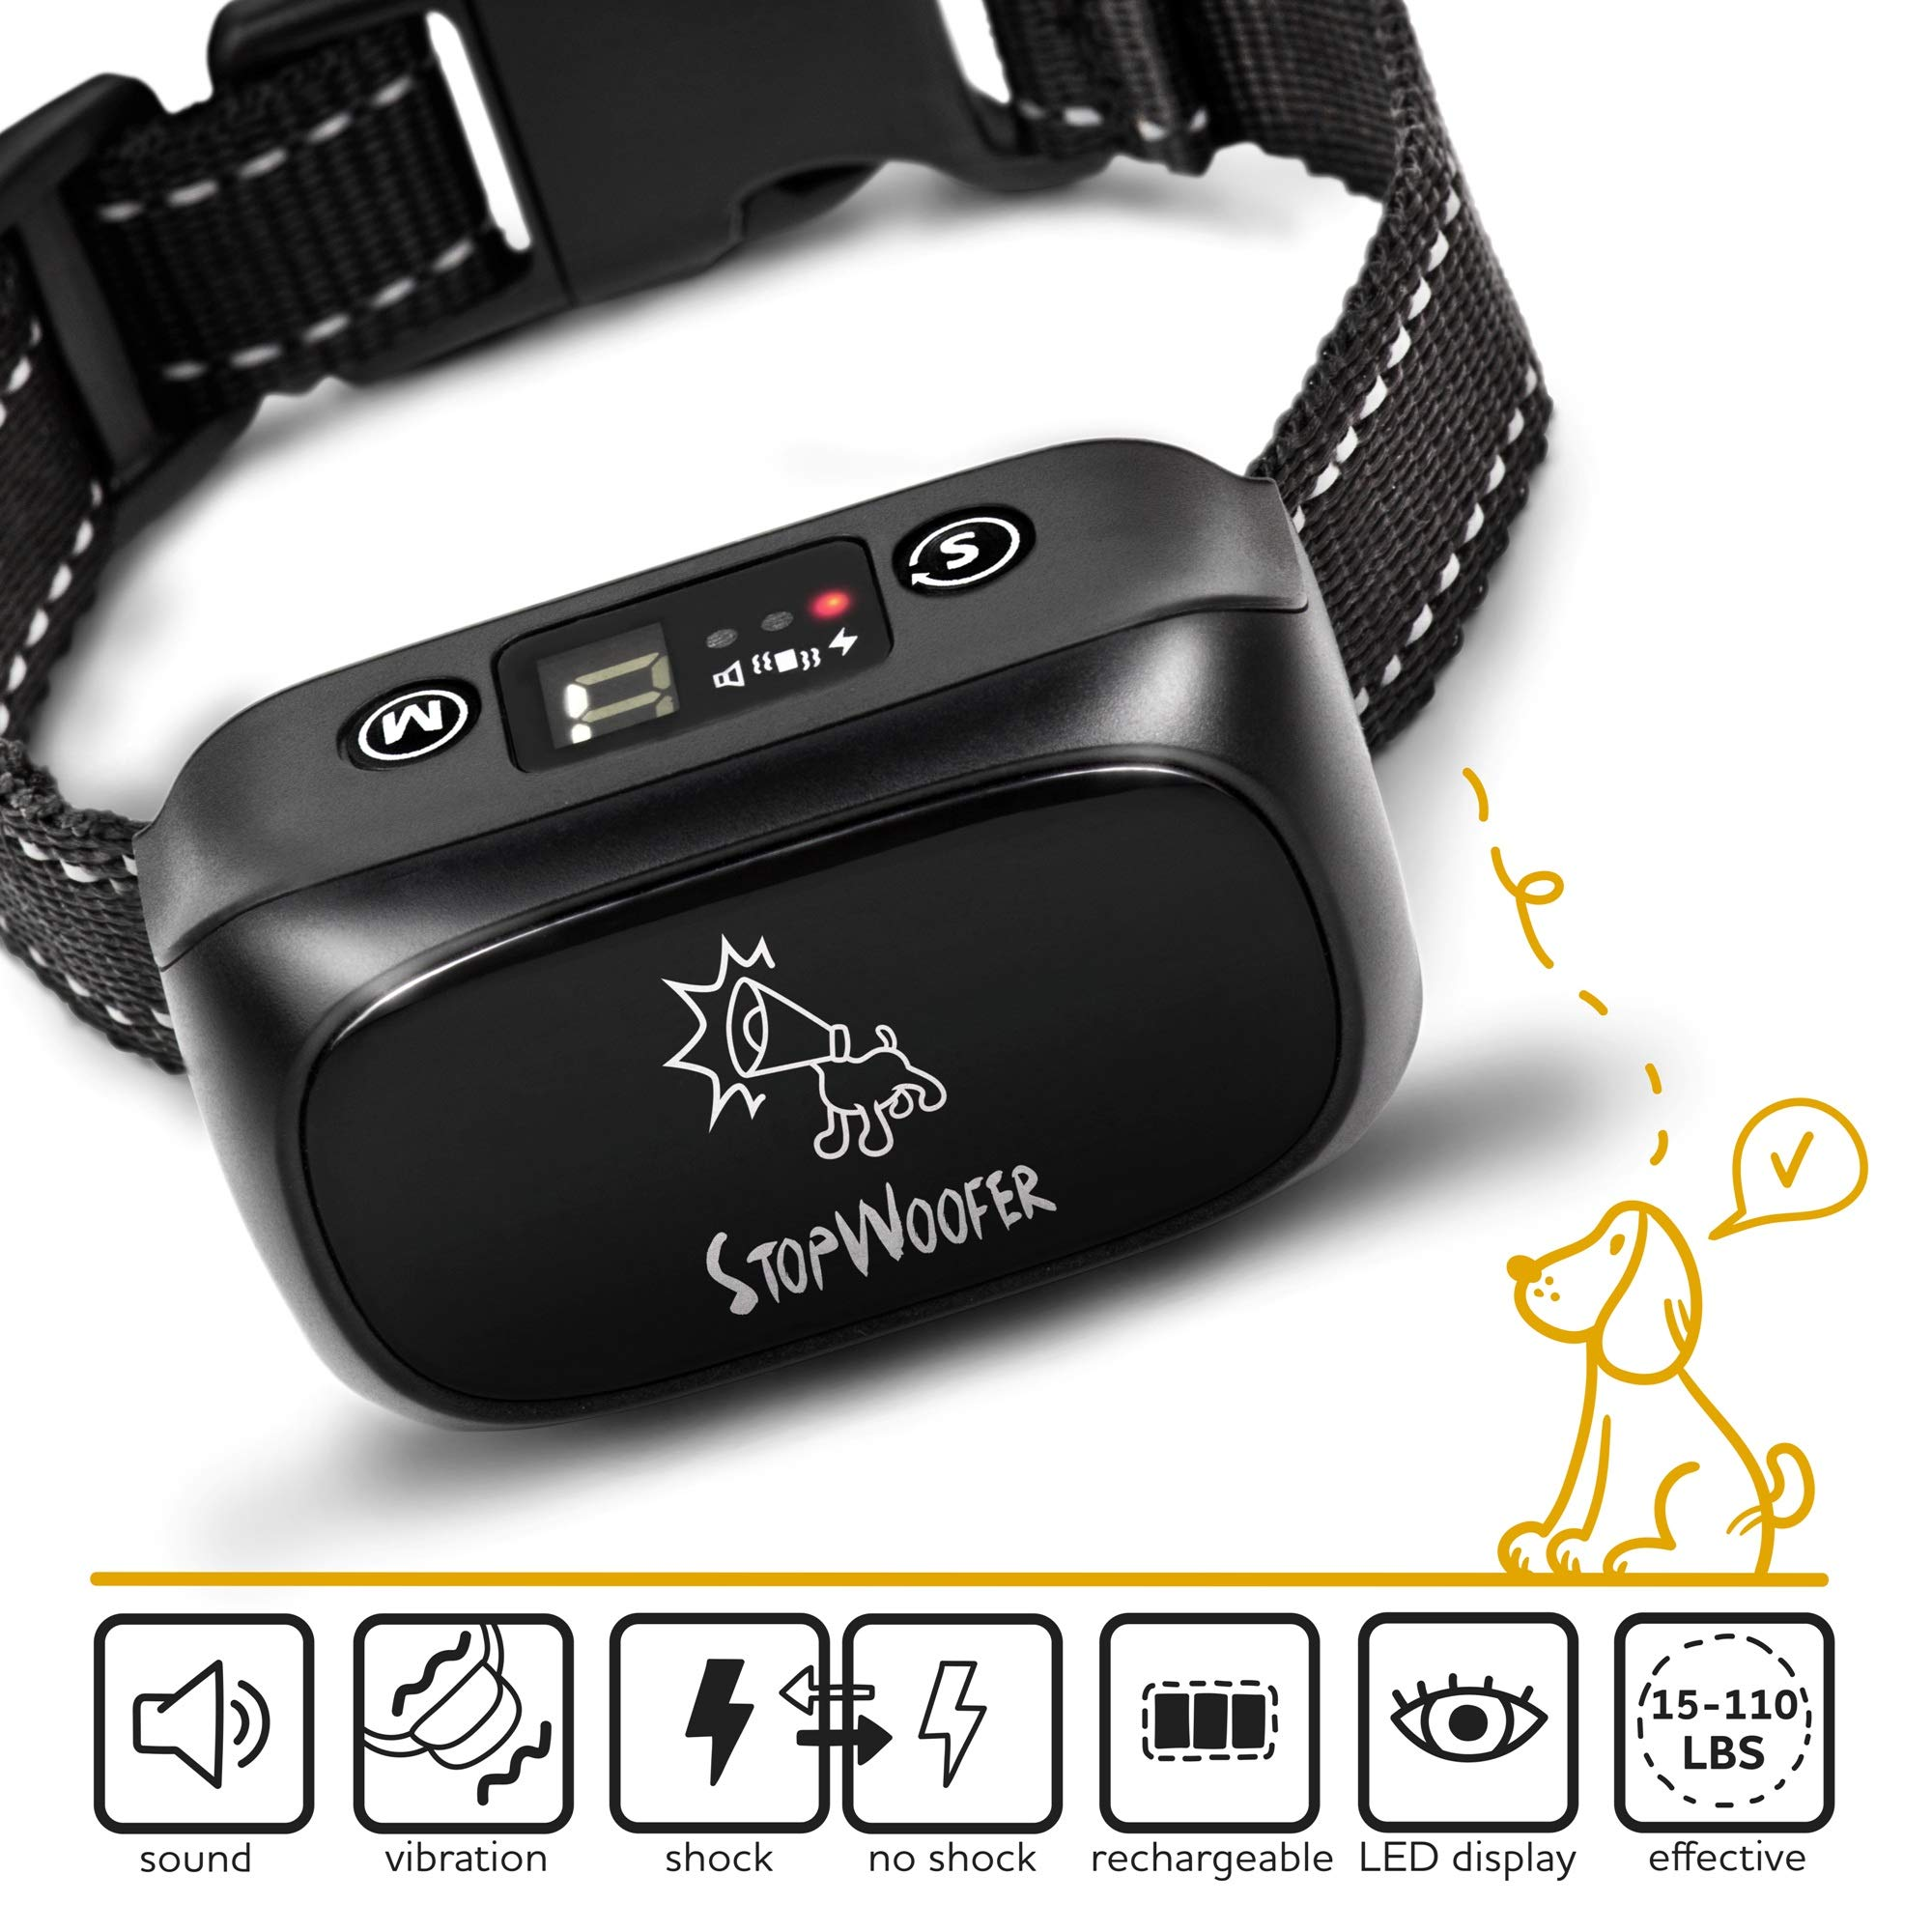 [Newest 2019] Bark collar - Humane Dog Bark Collar - Anti Barking Collar Small Dogs Medium Large Dogs - Rechargeable Anti bark Collar - No bark Collars Sound Warning Vibration Electric Stimulation by AttaBoy (Image #1)